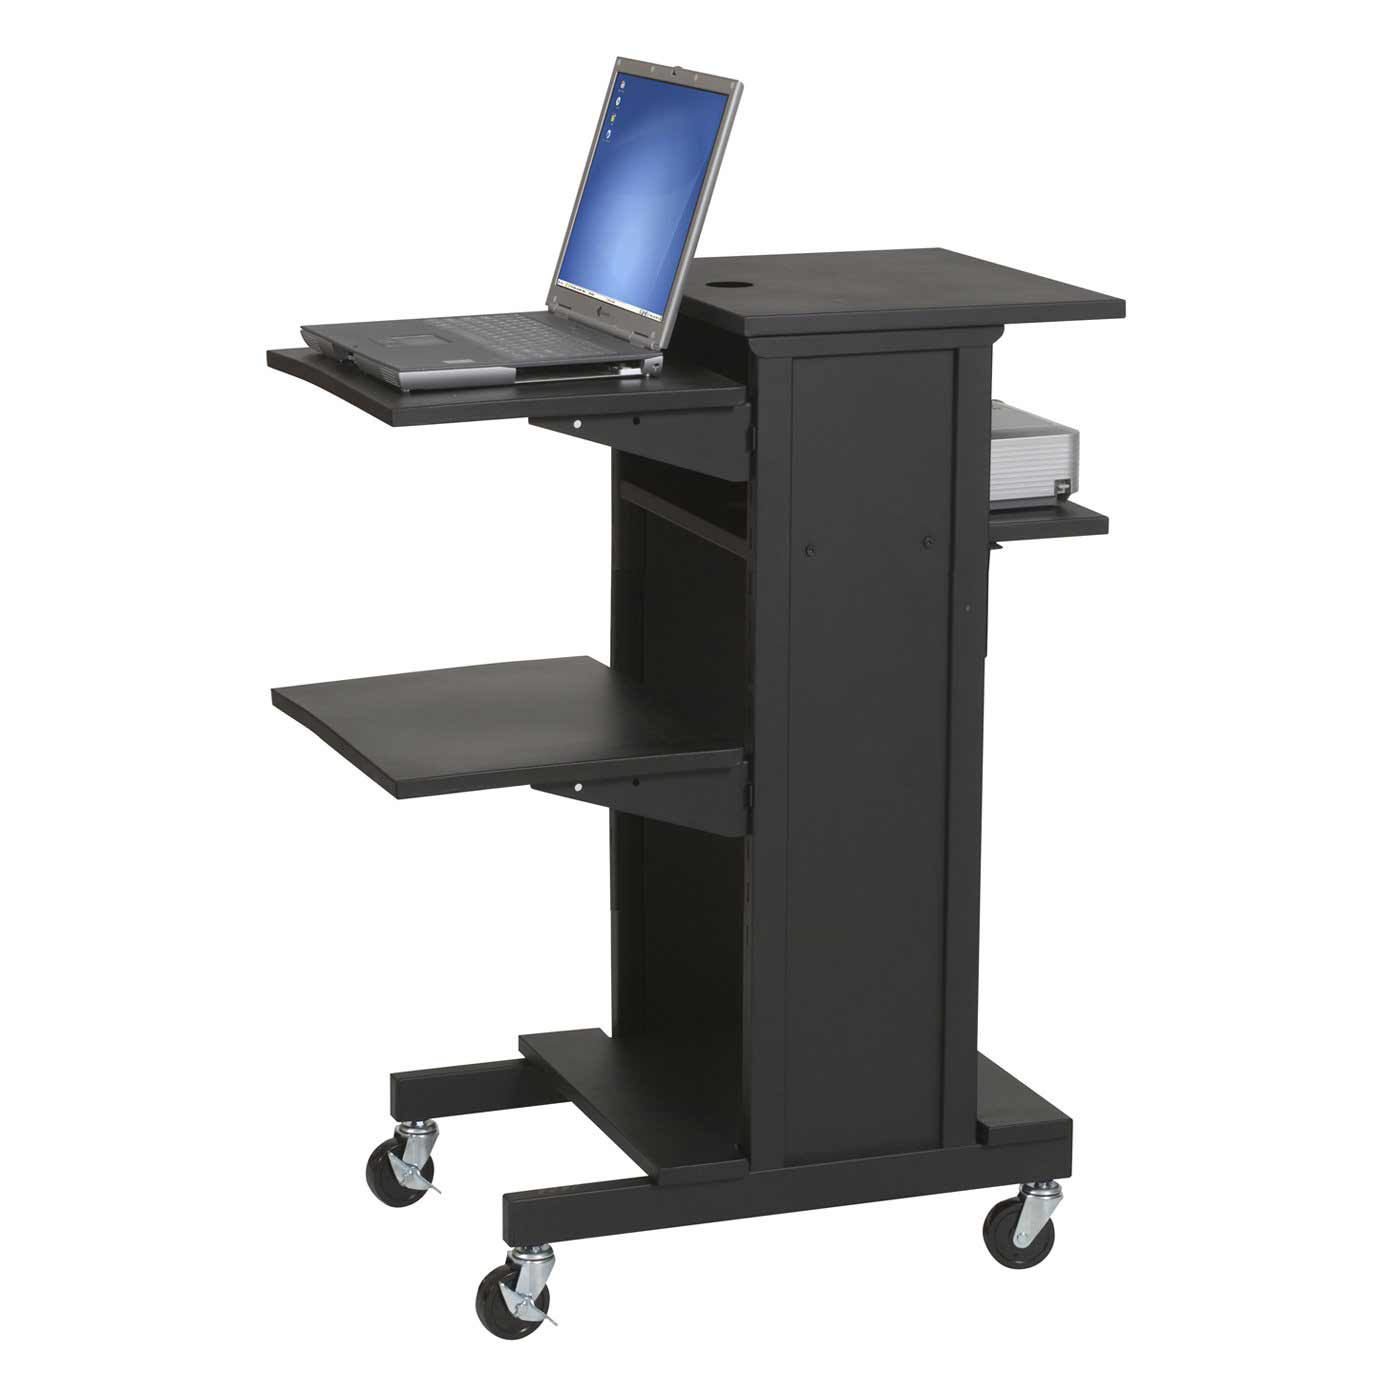 Balt 27548 Presentation Cart with Optional Shelf